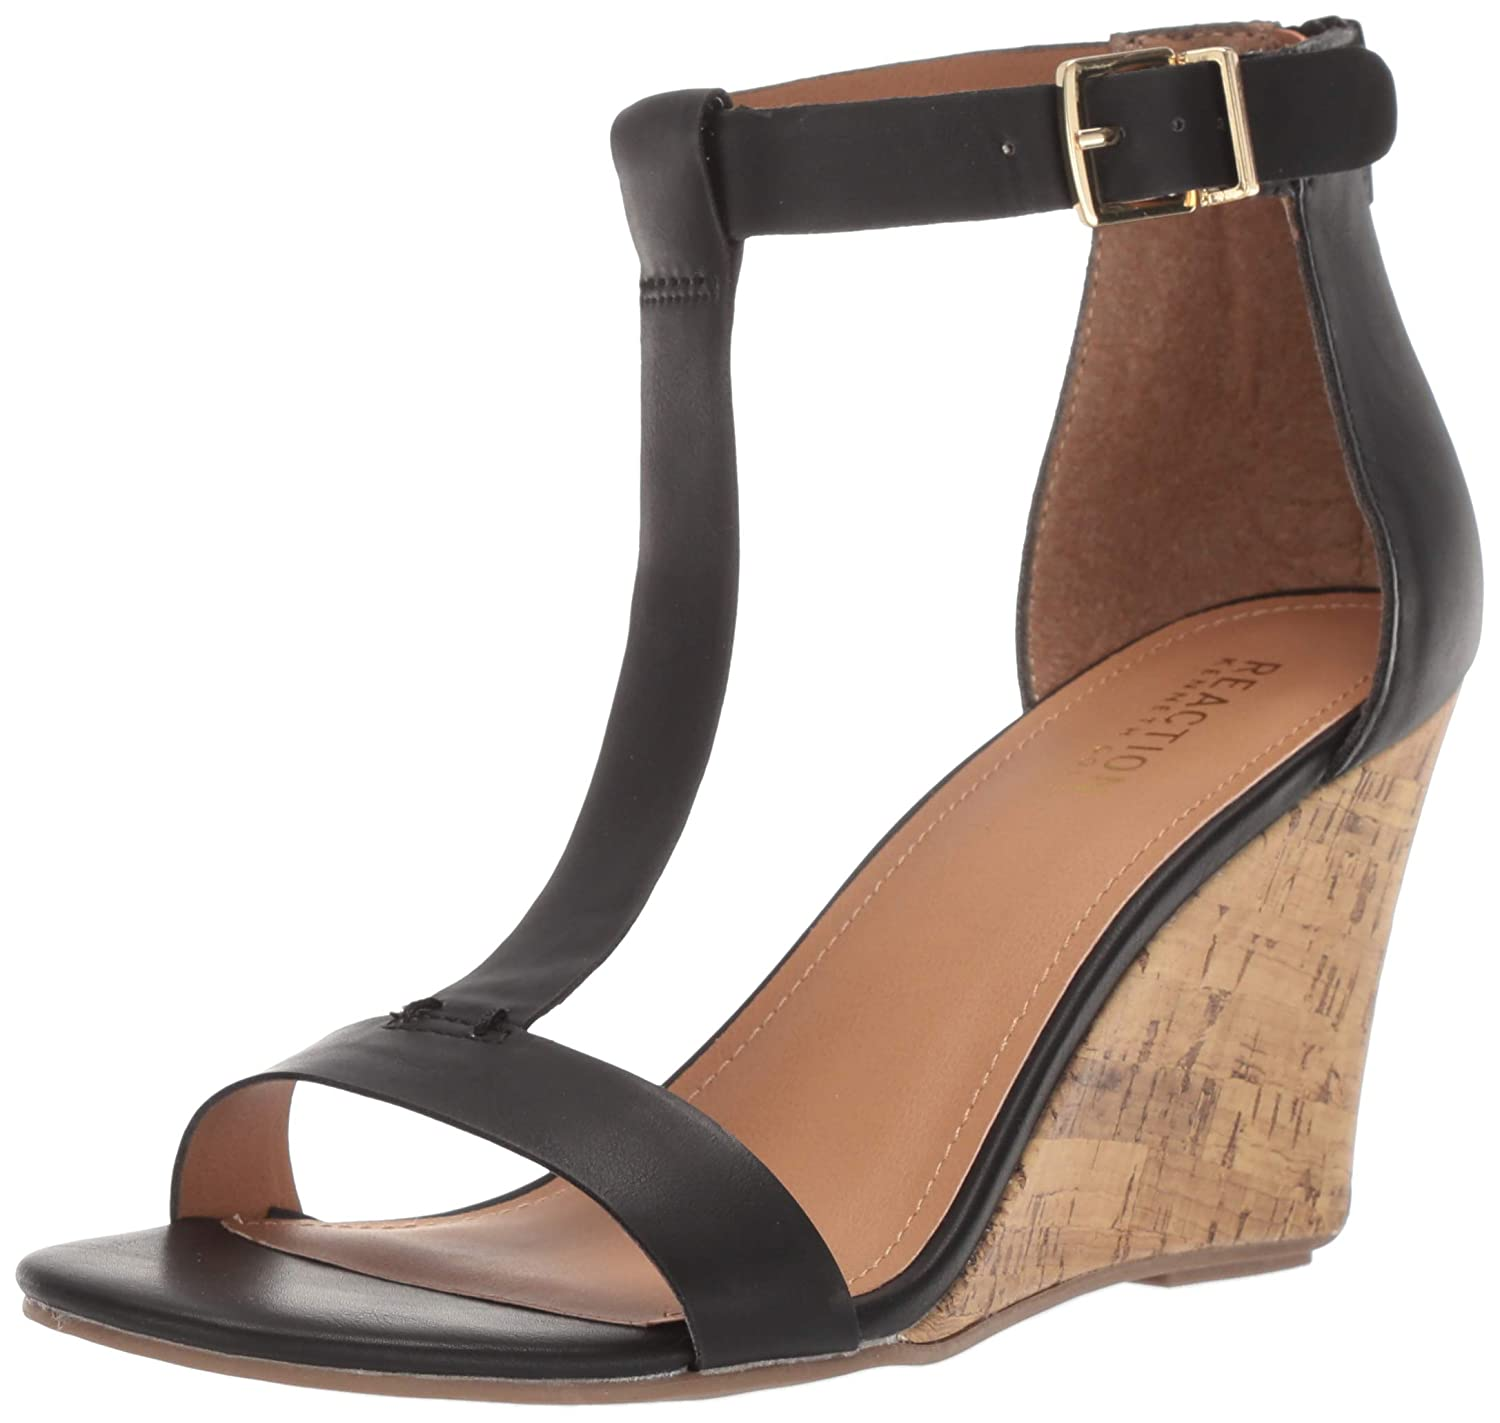 5973d69ca Amazon.com | Kenneth Cole REACTION Women's Ava Great T-Strap Wedge Sandal |  Platforms & Wedges